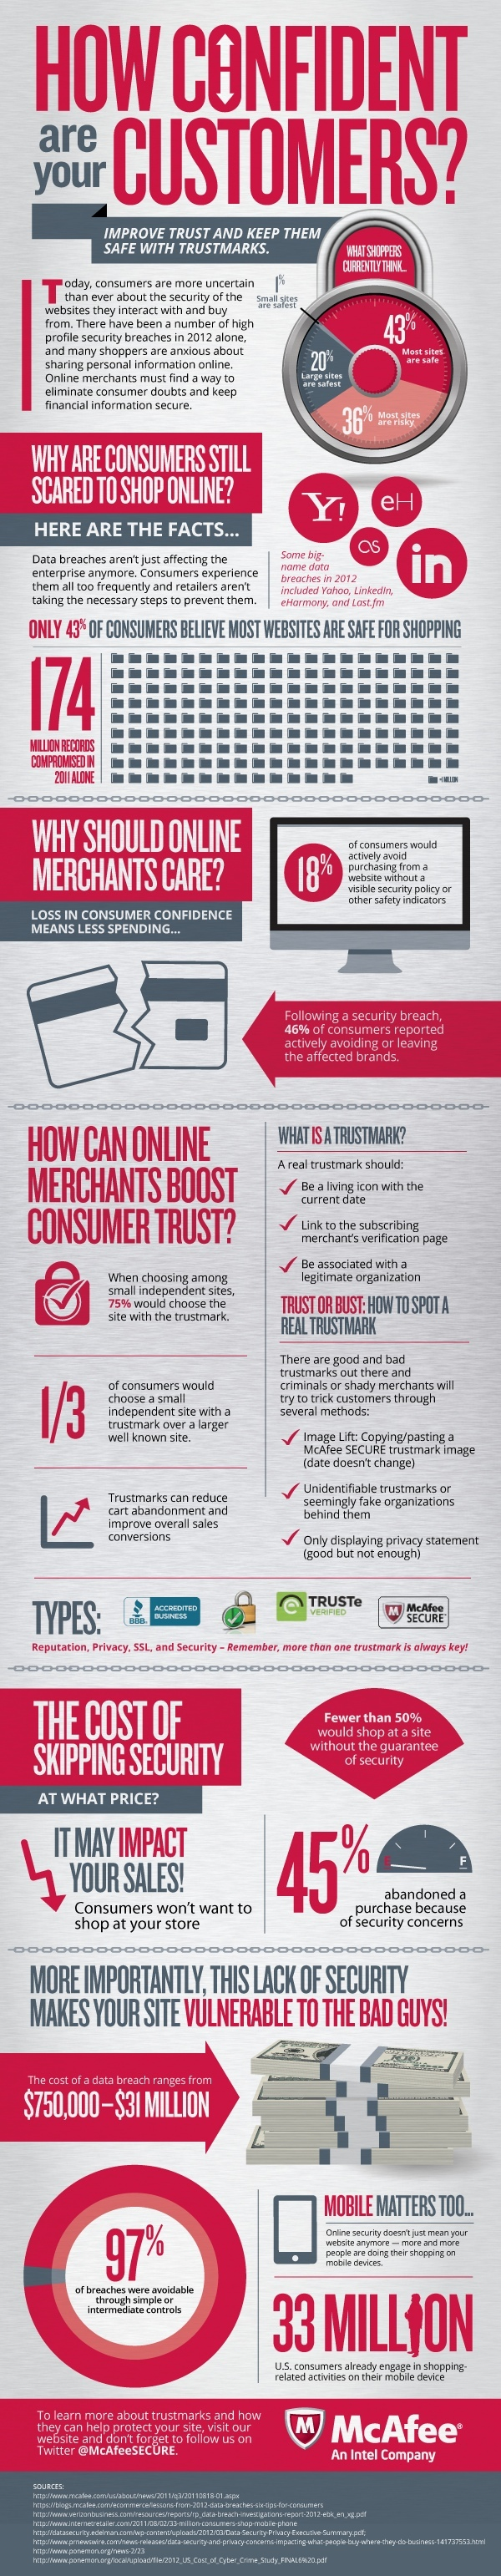 How Confident are Your Customers? Increase trust with TrustMarks - Infographic